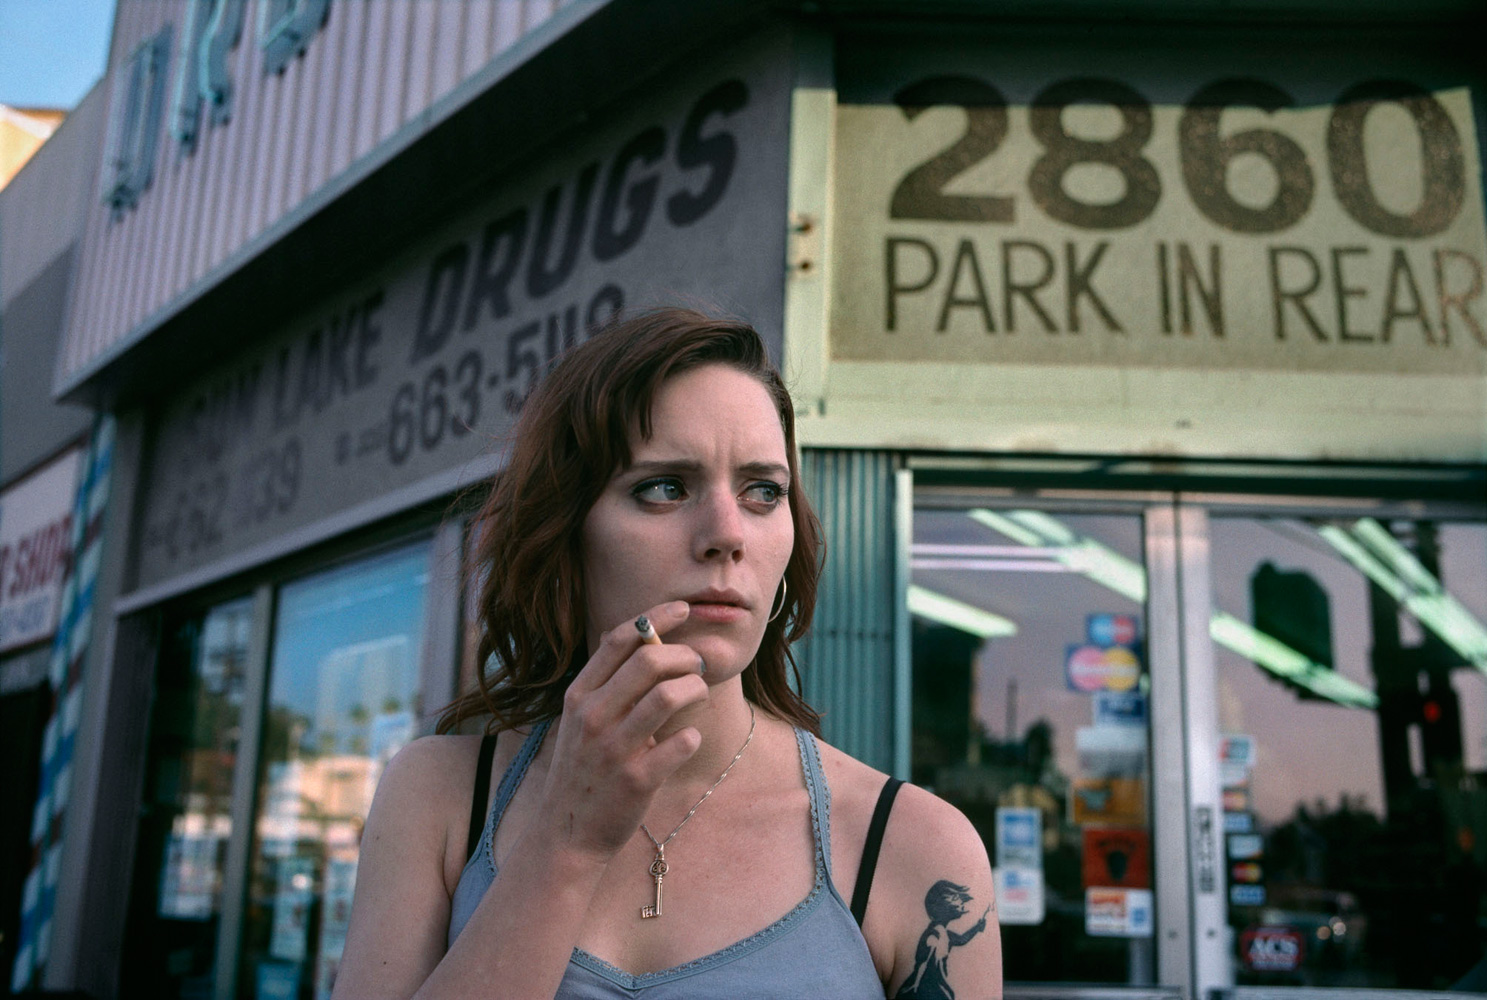 Emily, 2860 Sunset Blvd, 2010. From the series On Hollywood.